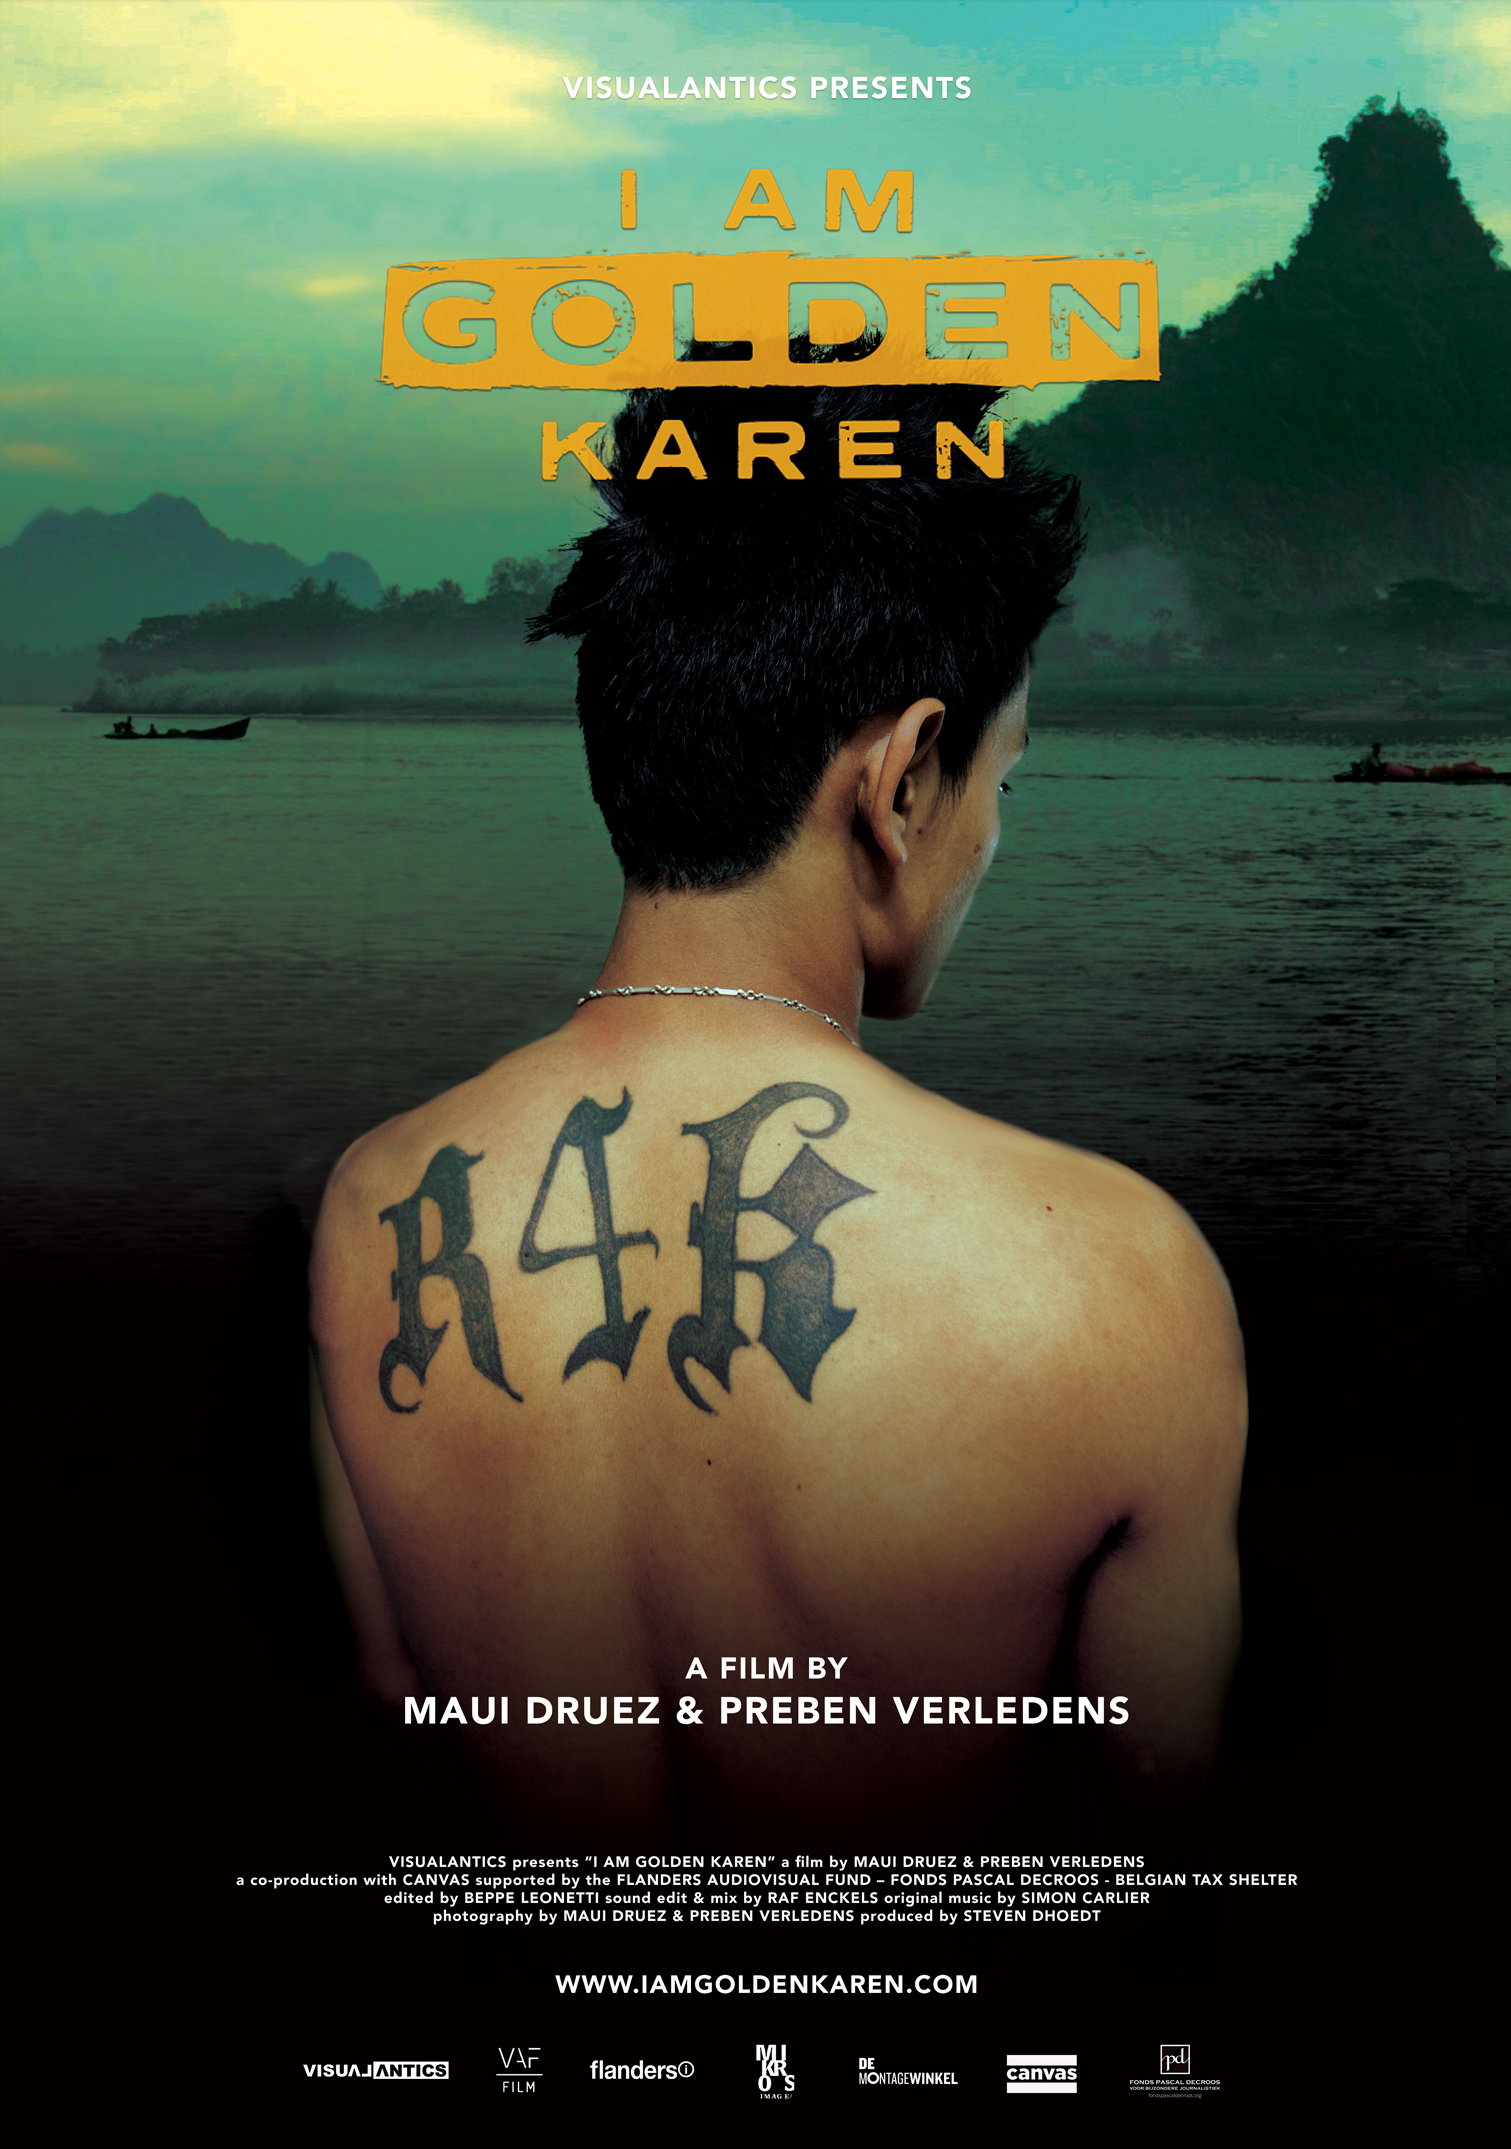 - I AM GOLDEN KAREN, 2018 (Thailand, Burma)I Am Golden Karen tells the story of Thaawa, a young rapper from Burma's Karen State who is part of an entire generation that has grown up in Thailand but nurtures a strong desire to return to their motherland. The film follows Thaawa as he negotiates his identity from being a young migrant arriving in Bangkok to becoming a father. He questions his responsibilities towards the family and his desire to both settle in Thailand and return to Karen State.Directors: Maui Druez, Preben VerledensLength: 1h 13minWhere and When: Genesis Cinema, Tue 4 Dec, 6.45pm